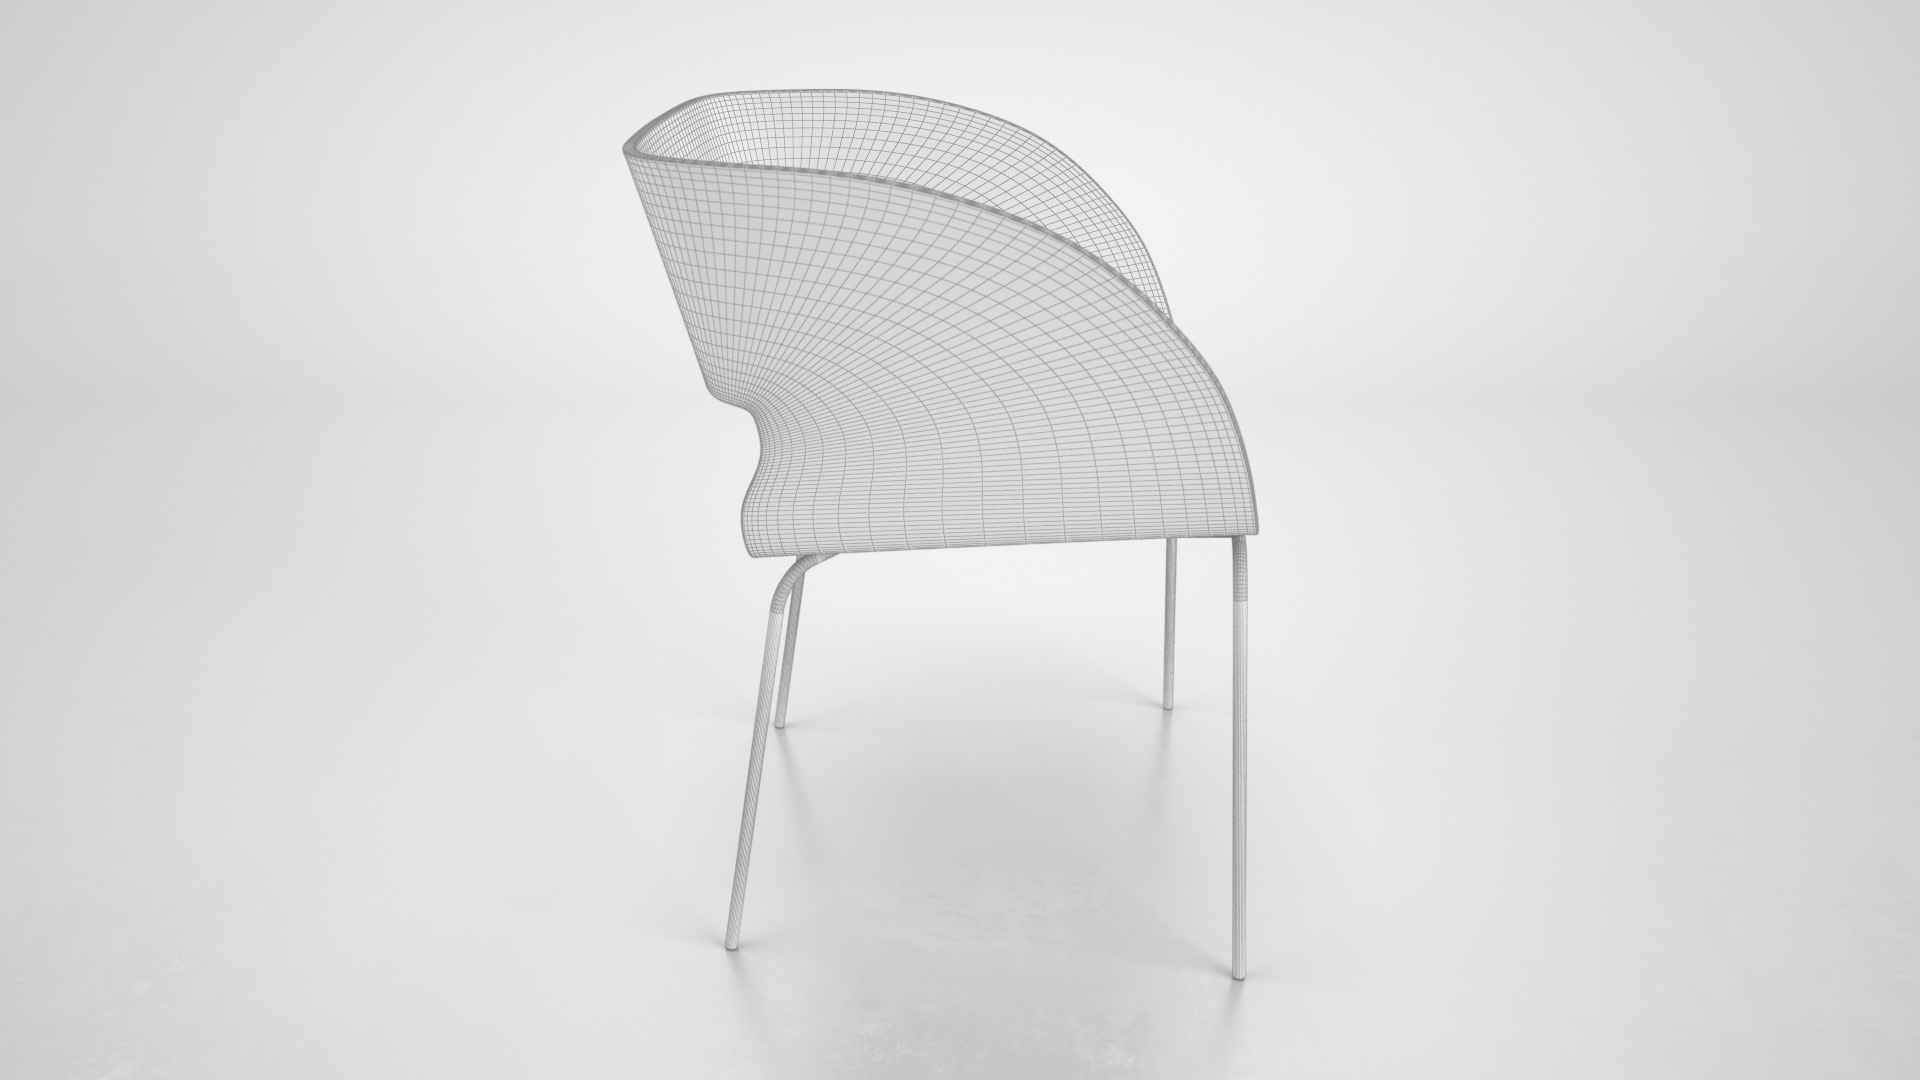 019_Vintage_Chair_WhiteSet_01_wire_0002